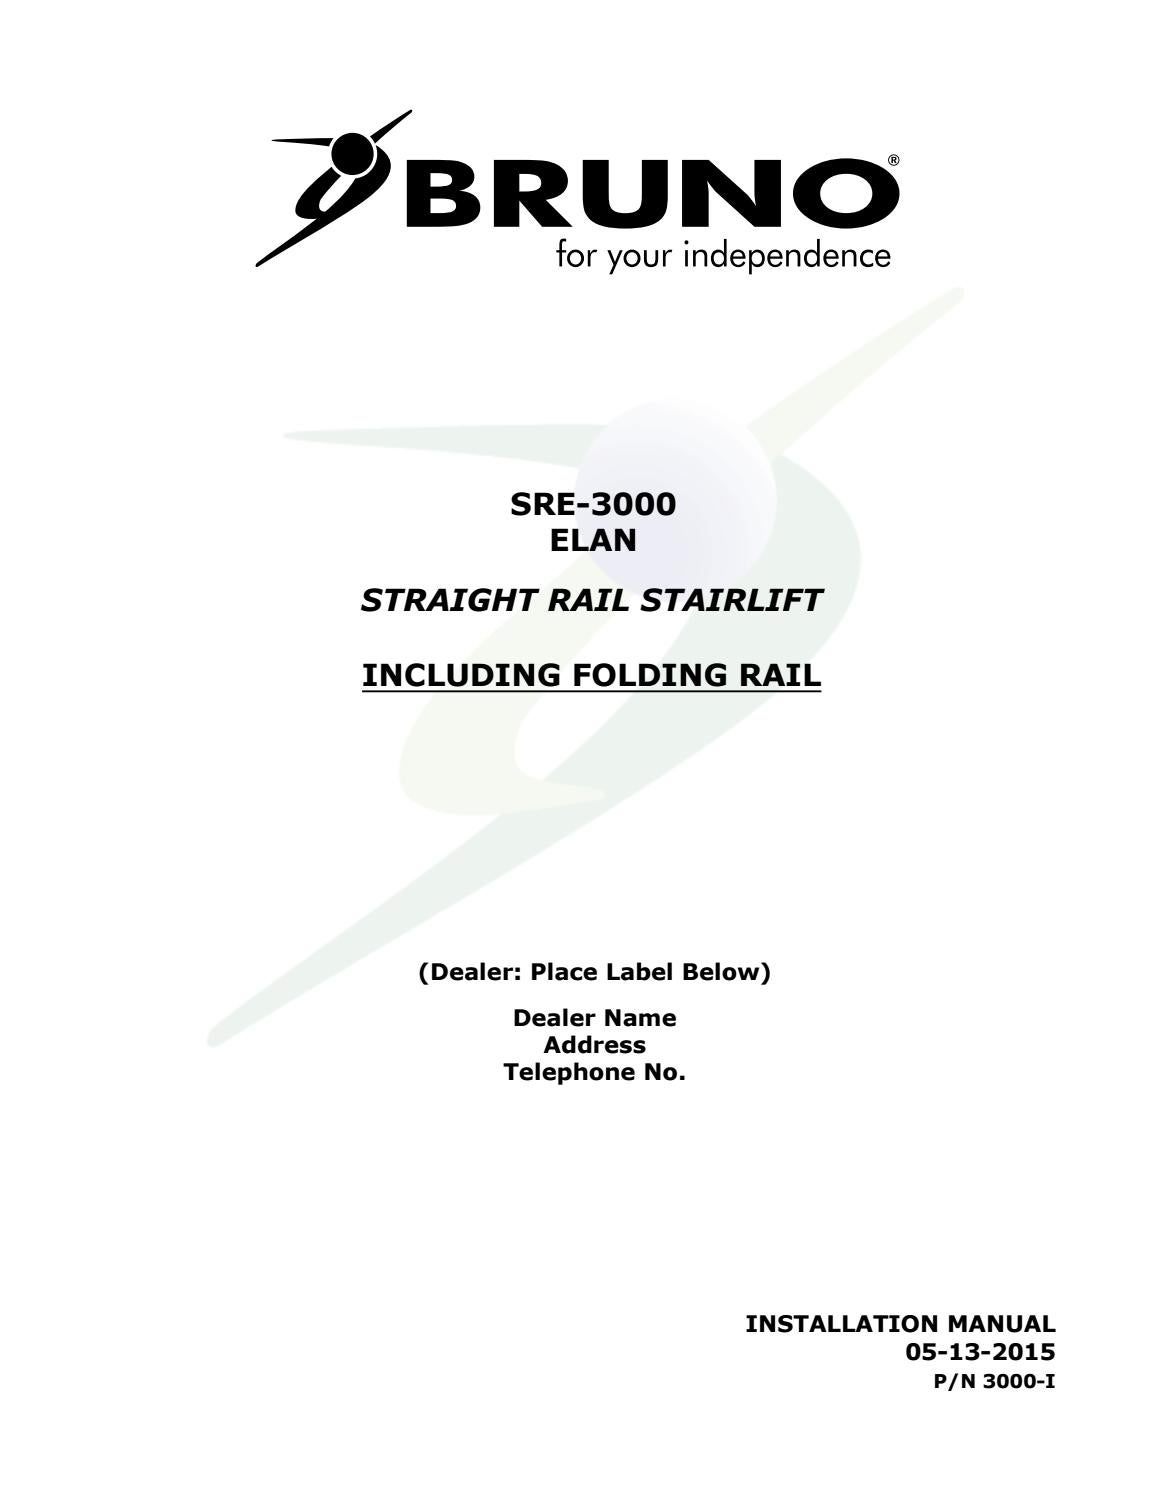 chair lift wiring schematic bruno sre 3000 installation manual stair lift by b manual issuu  bruno sre 3000 installation manual